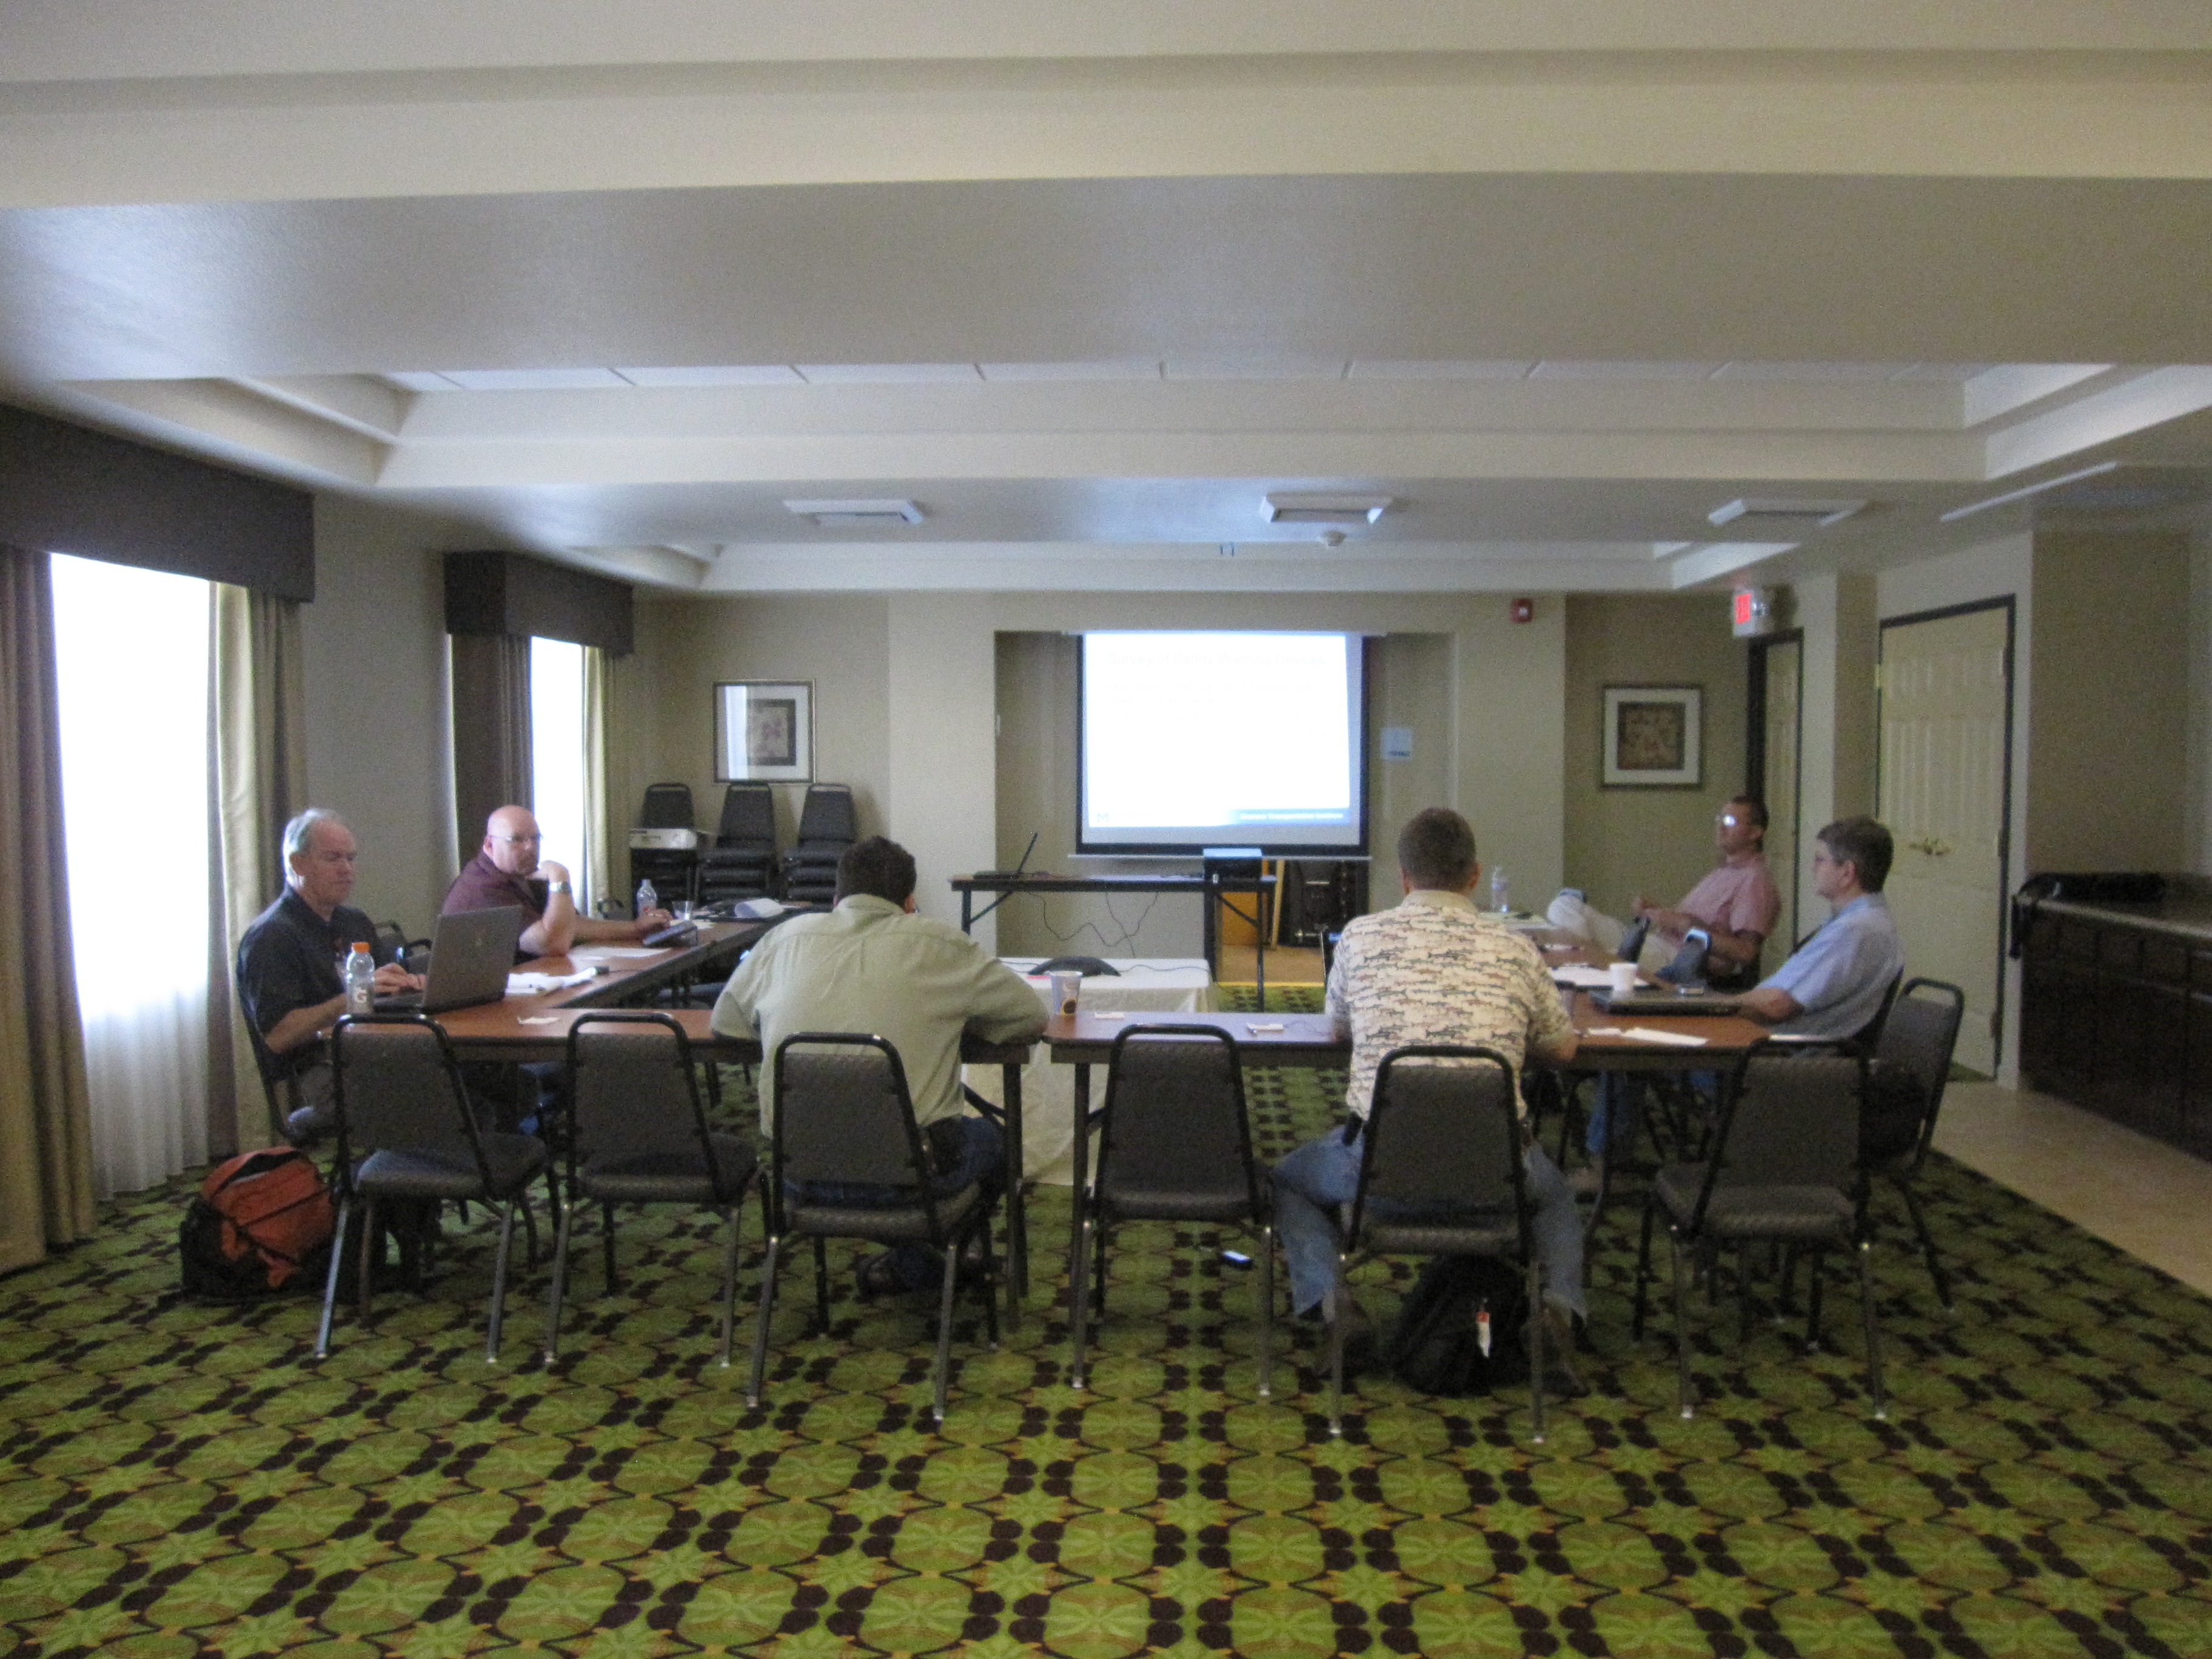 June 12, 2012, Western States Rural Transportation Consortium Steering Committee meeting, Yreka, California.